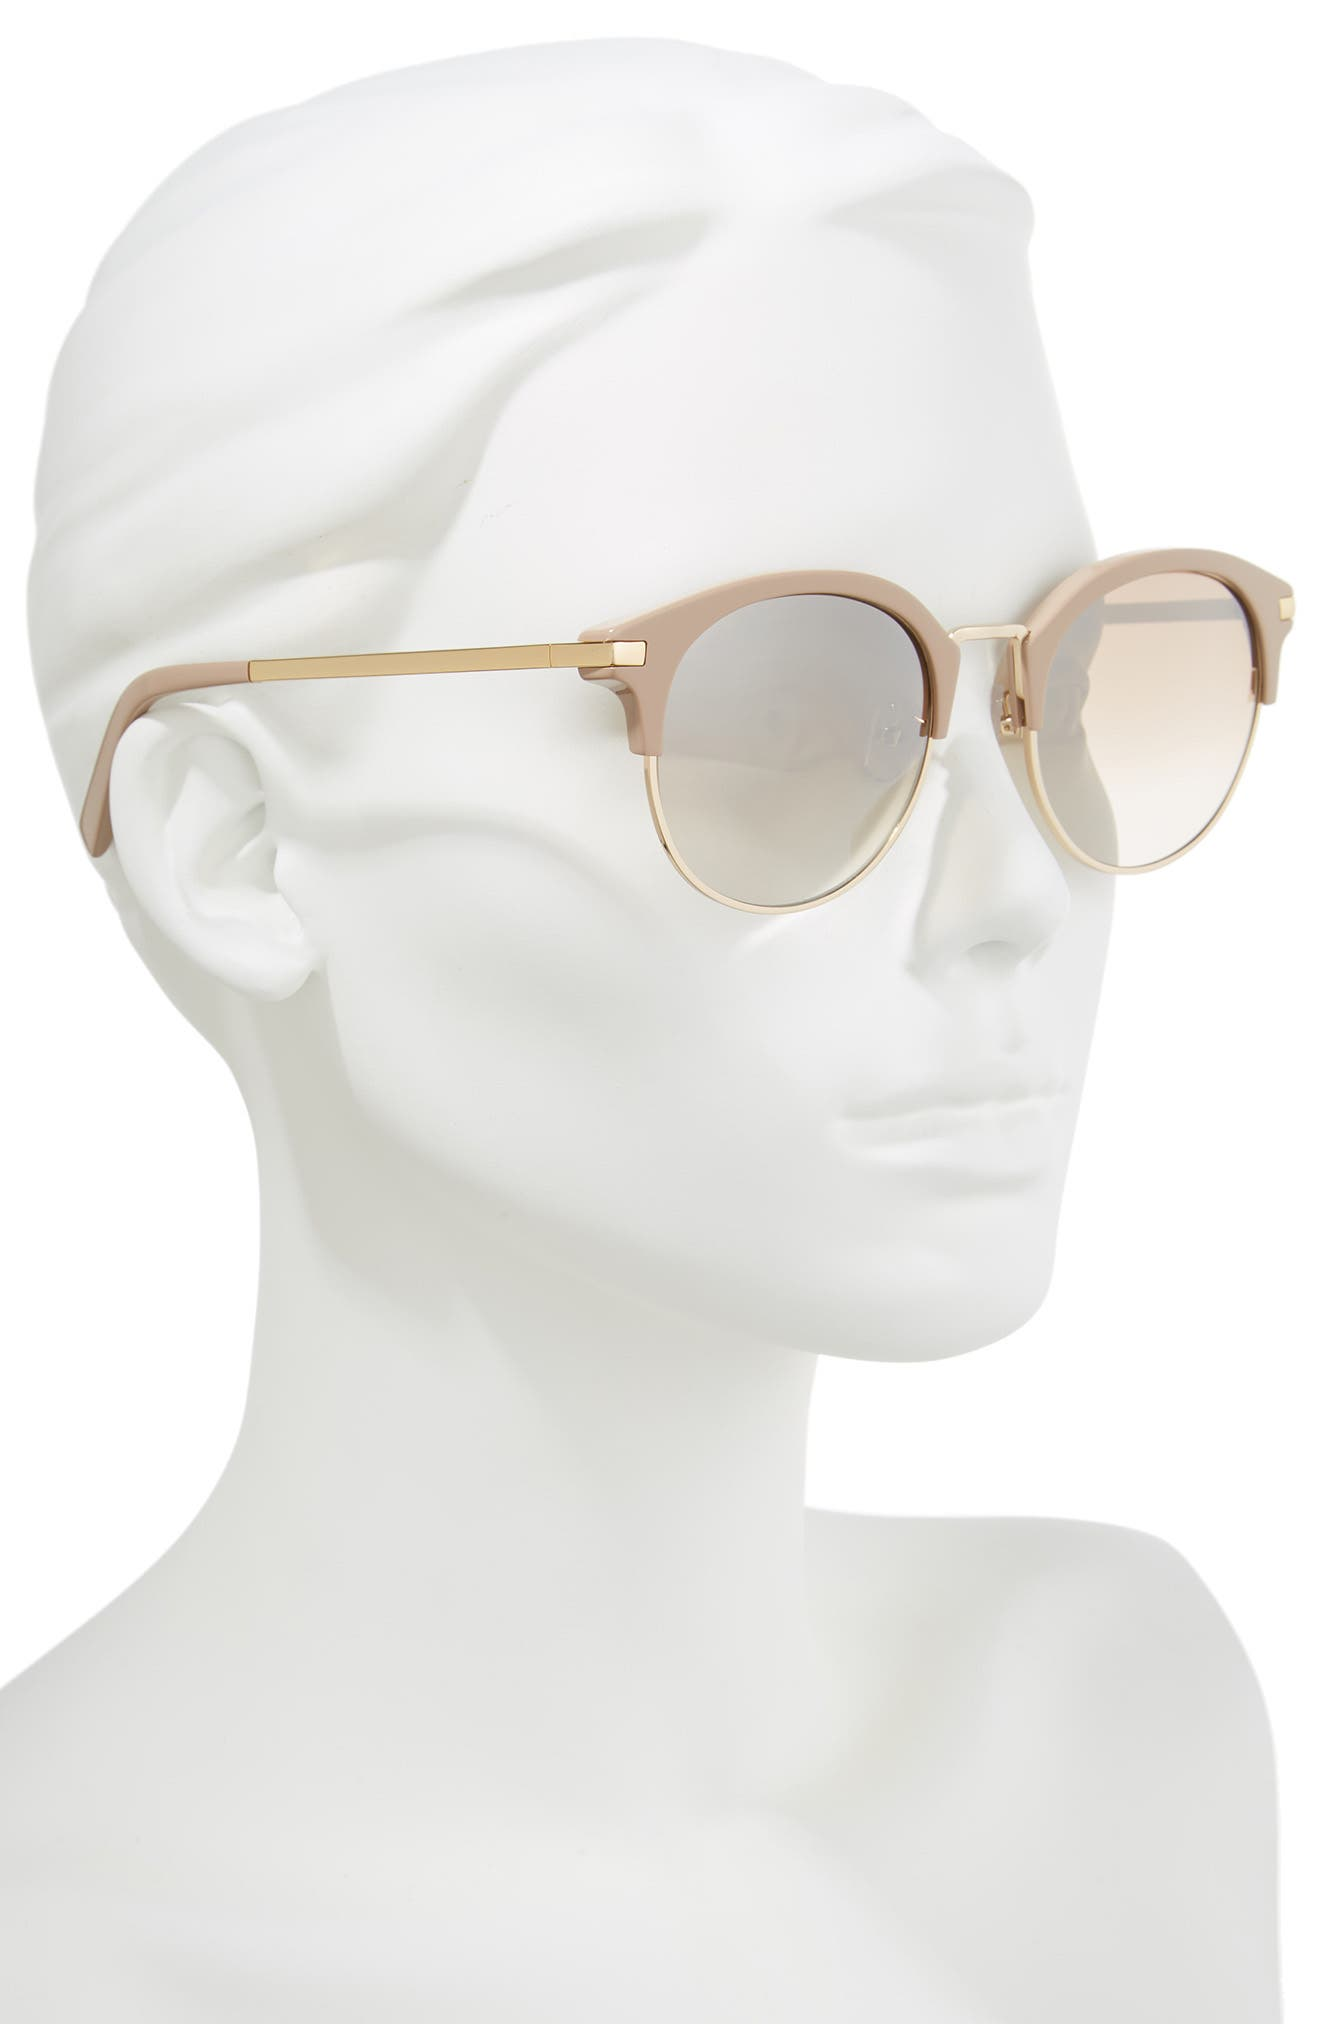 56mm Round Sunglasses,                             Alternate thumbnail 2, color,                             GOLD AND BEIGE/GRADIENT BROWN